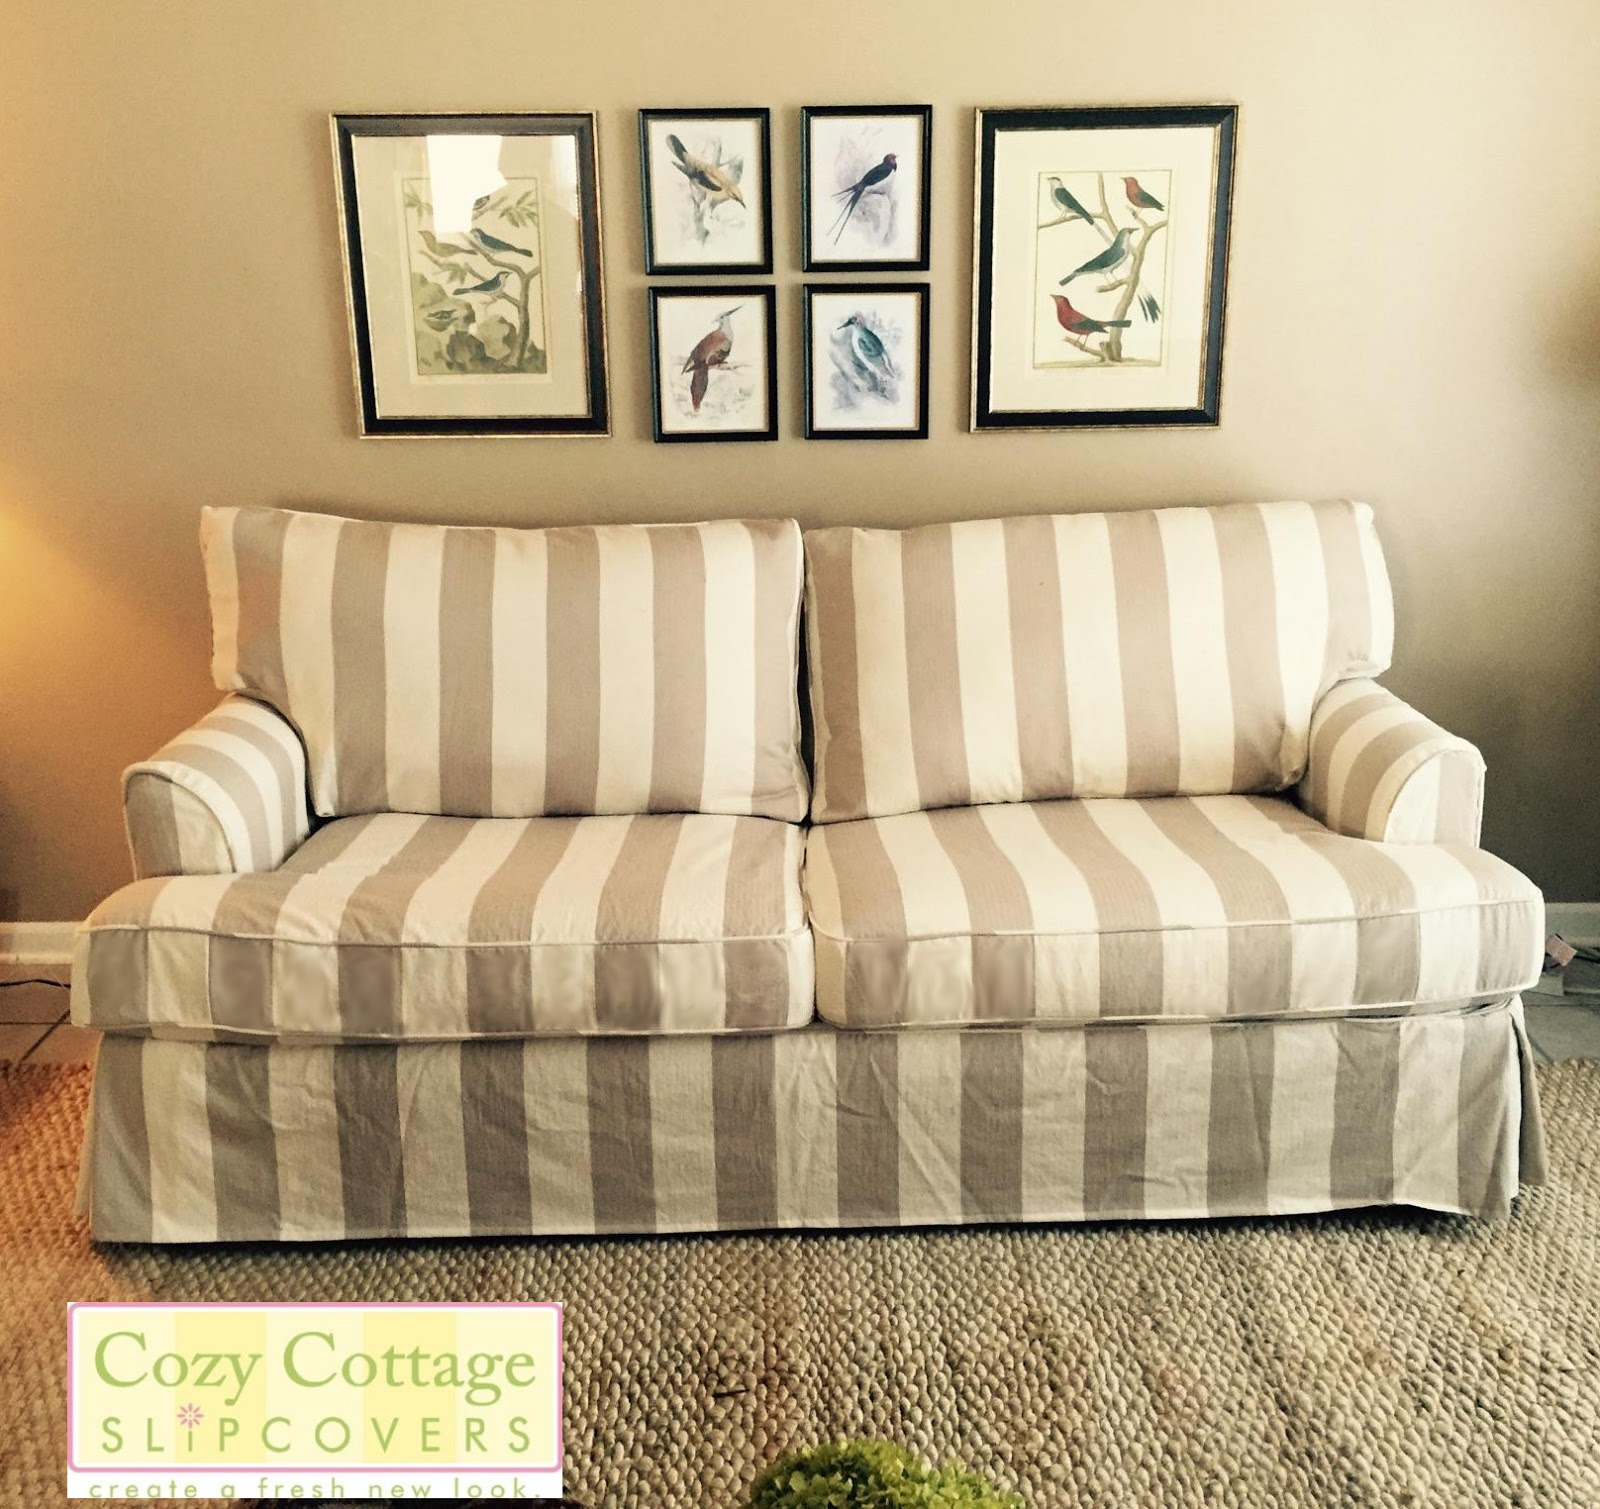 Navy Blue Striped Sofa Sofas Used Sale Slipcovers For Design Cottage